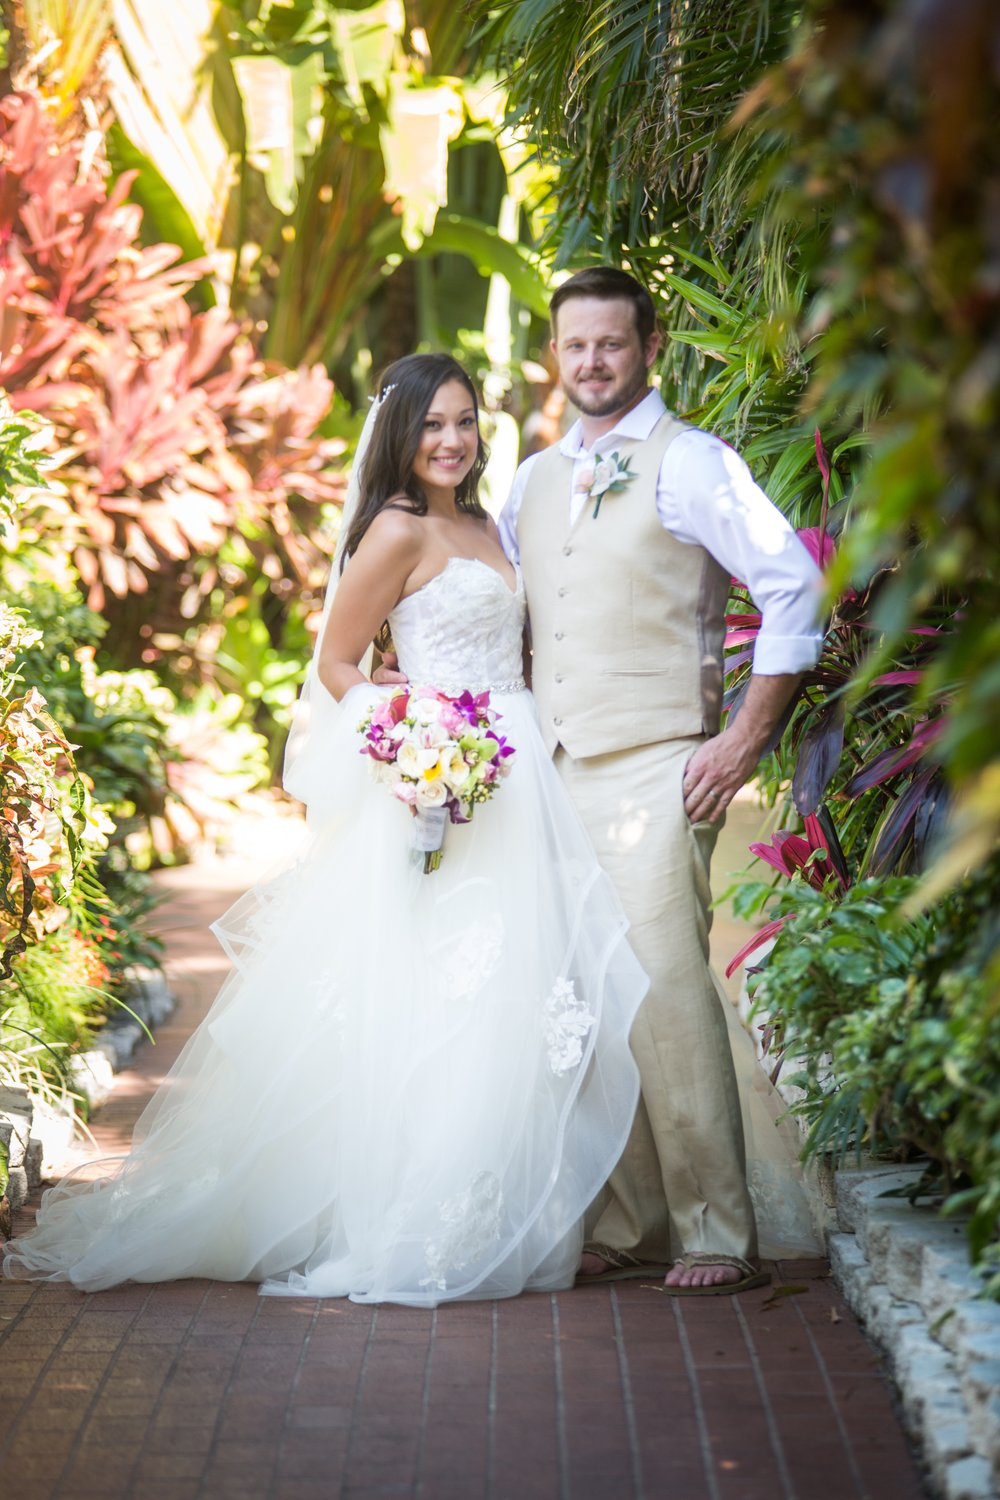 Couple on wedding day at pier house resort.JPG